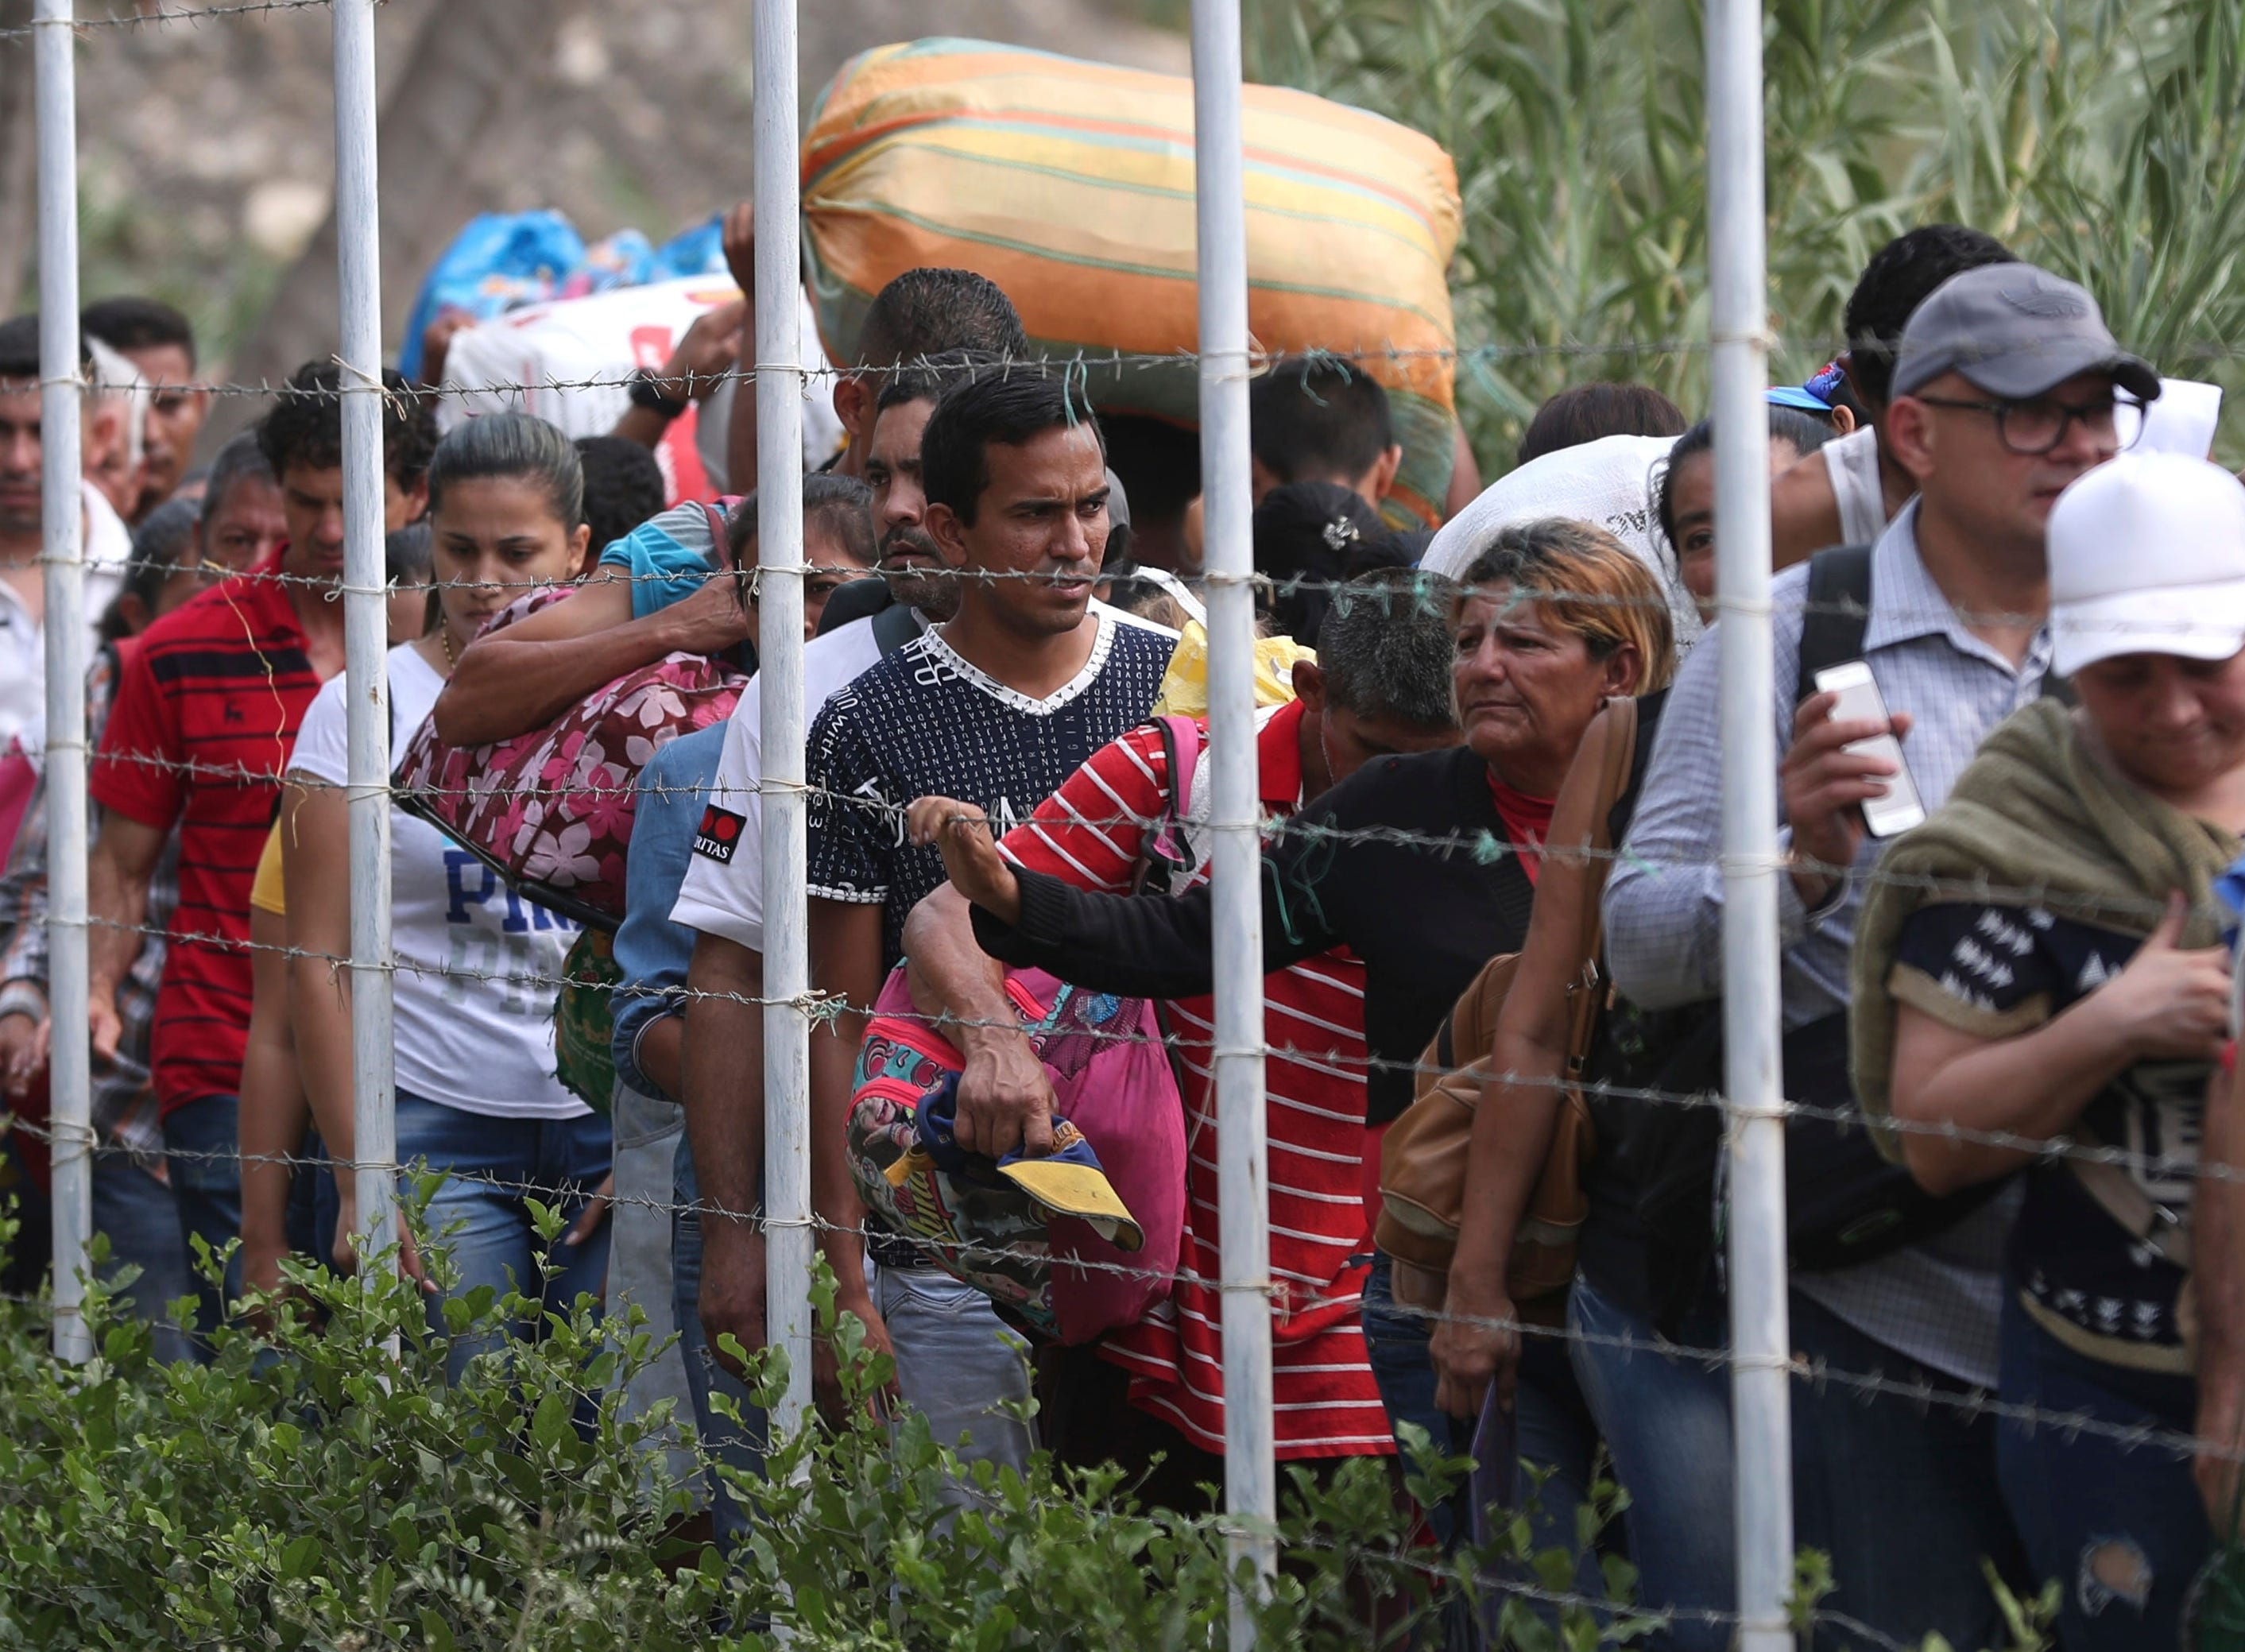 Venezuelans cross illegally into Colombia near the Simon Bolivar International Bridge, which Venezuelan authorities continue to keep closed, as soldiers start blocking some of the illegal crossings as well, in La Parada near Cucuta, Tuesday, March 5, 2019.